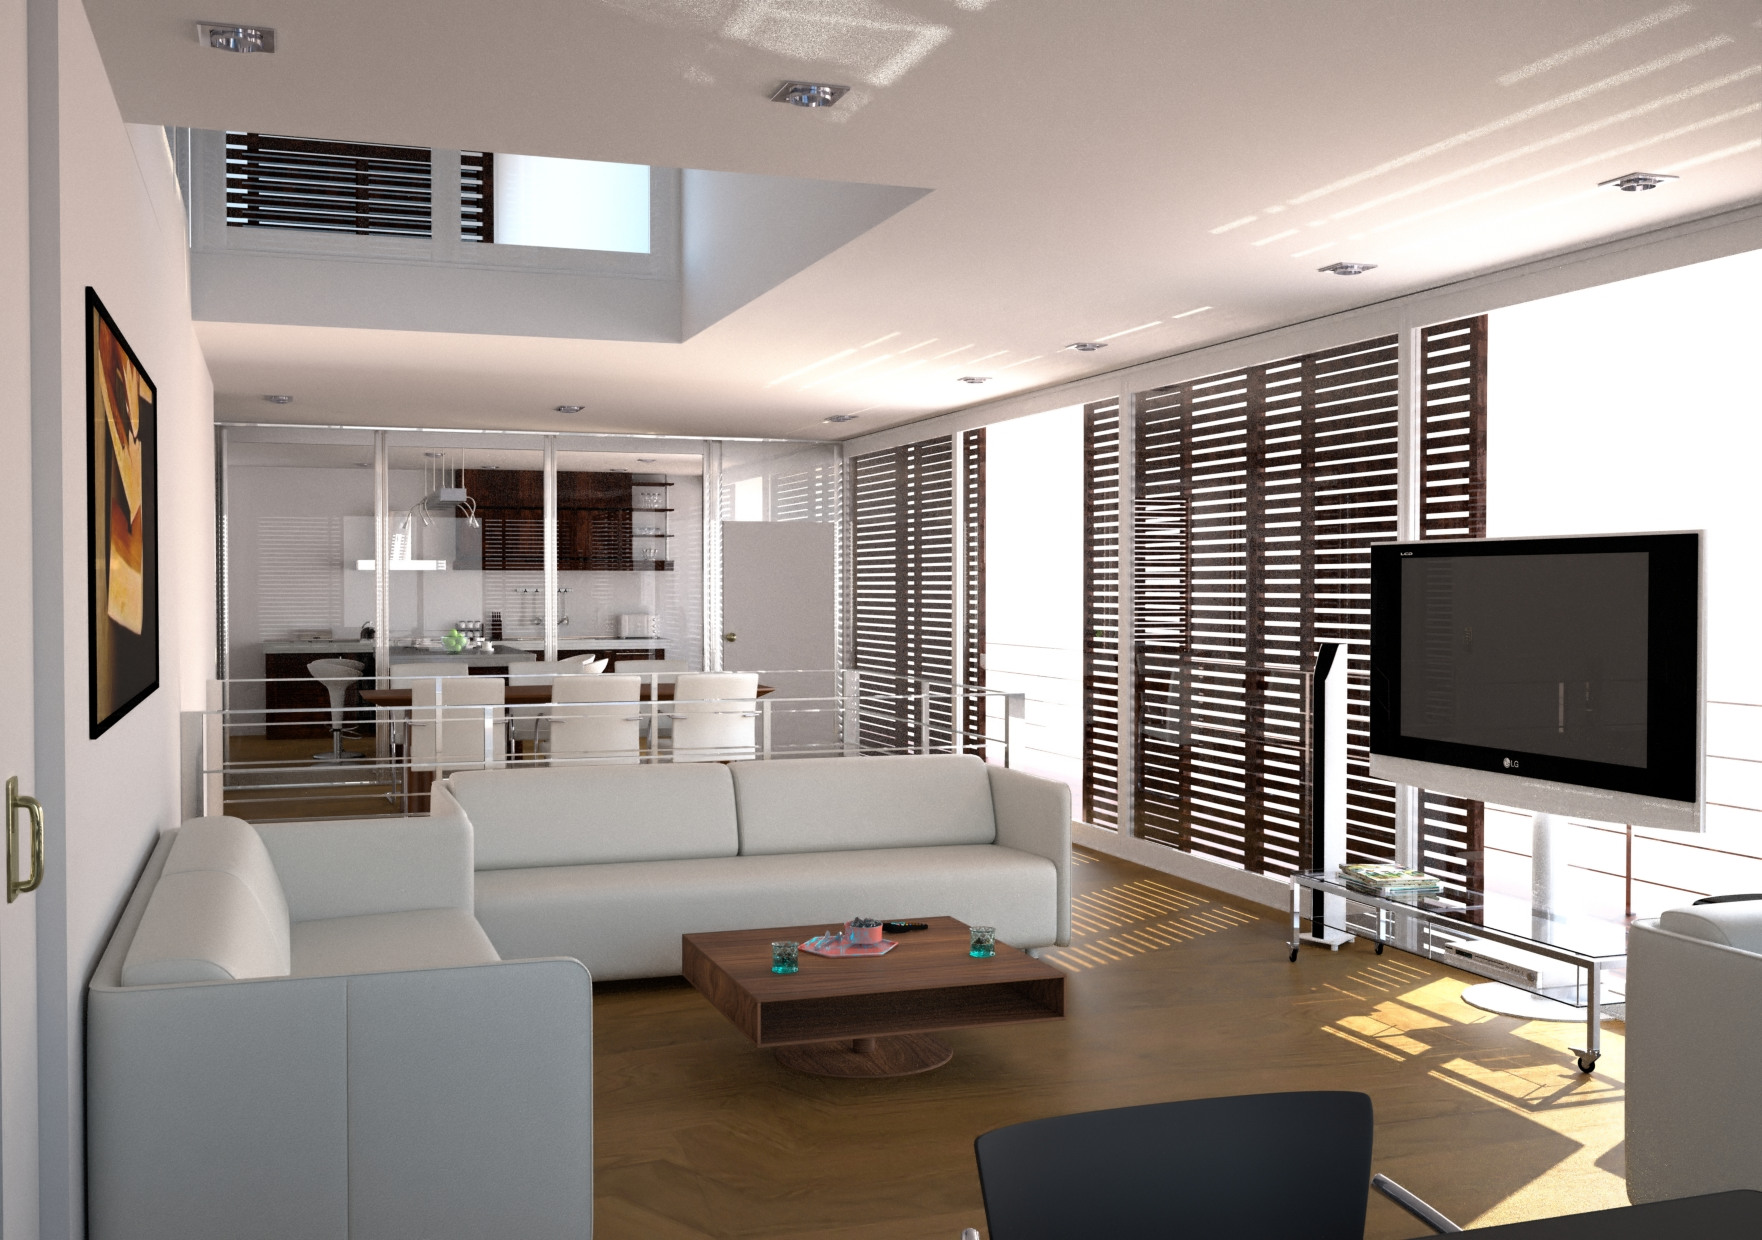 25 Stunning Home Interior Designs Ideas - The WoW Style on House Interior Ideas  id=95837